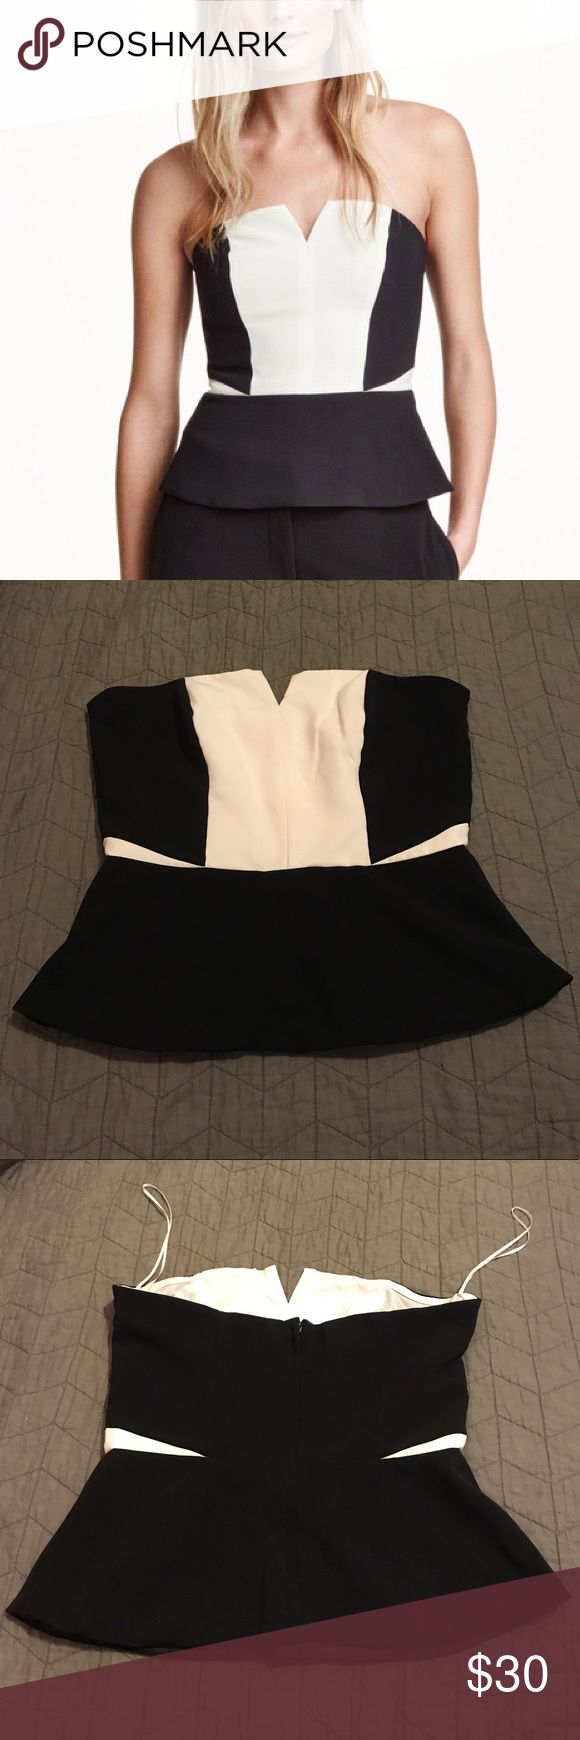 H&M Black and White Peplum Top Black and white strapless peplum top from H&M. Size 12. H&M Tops